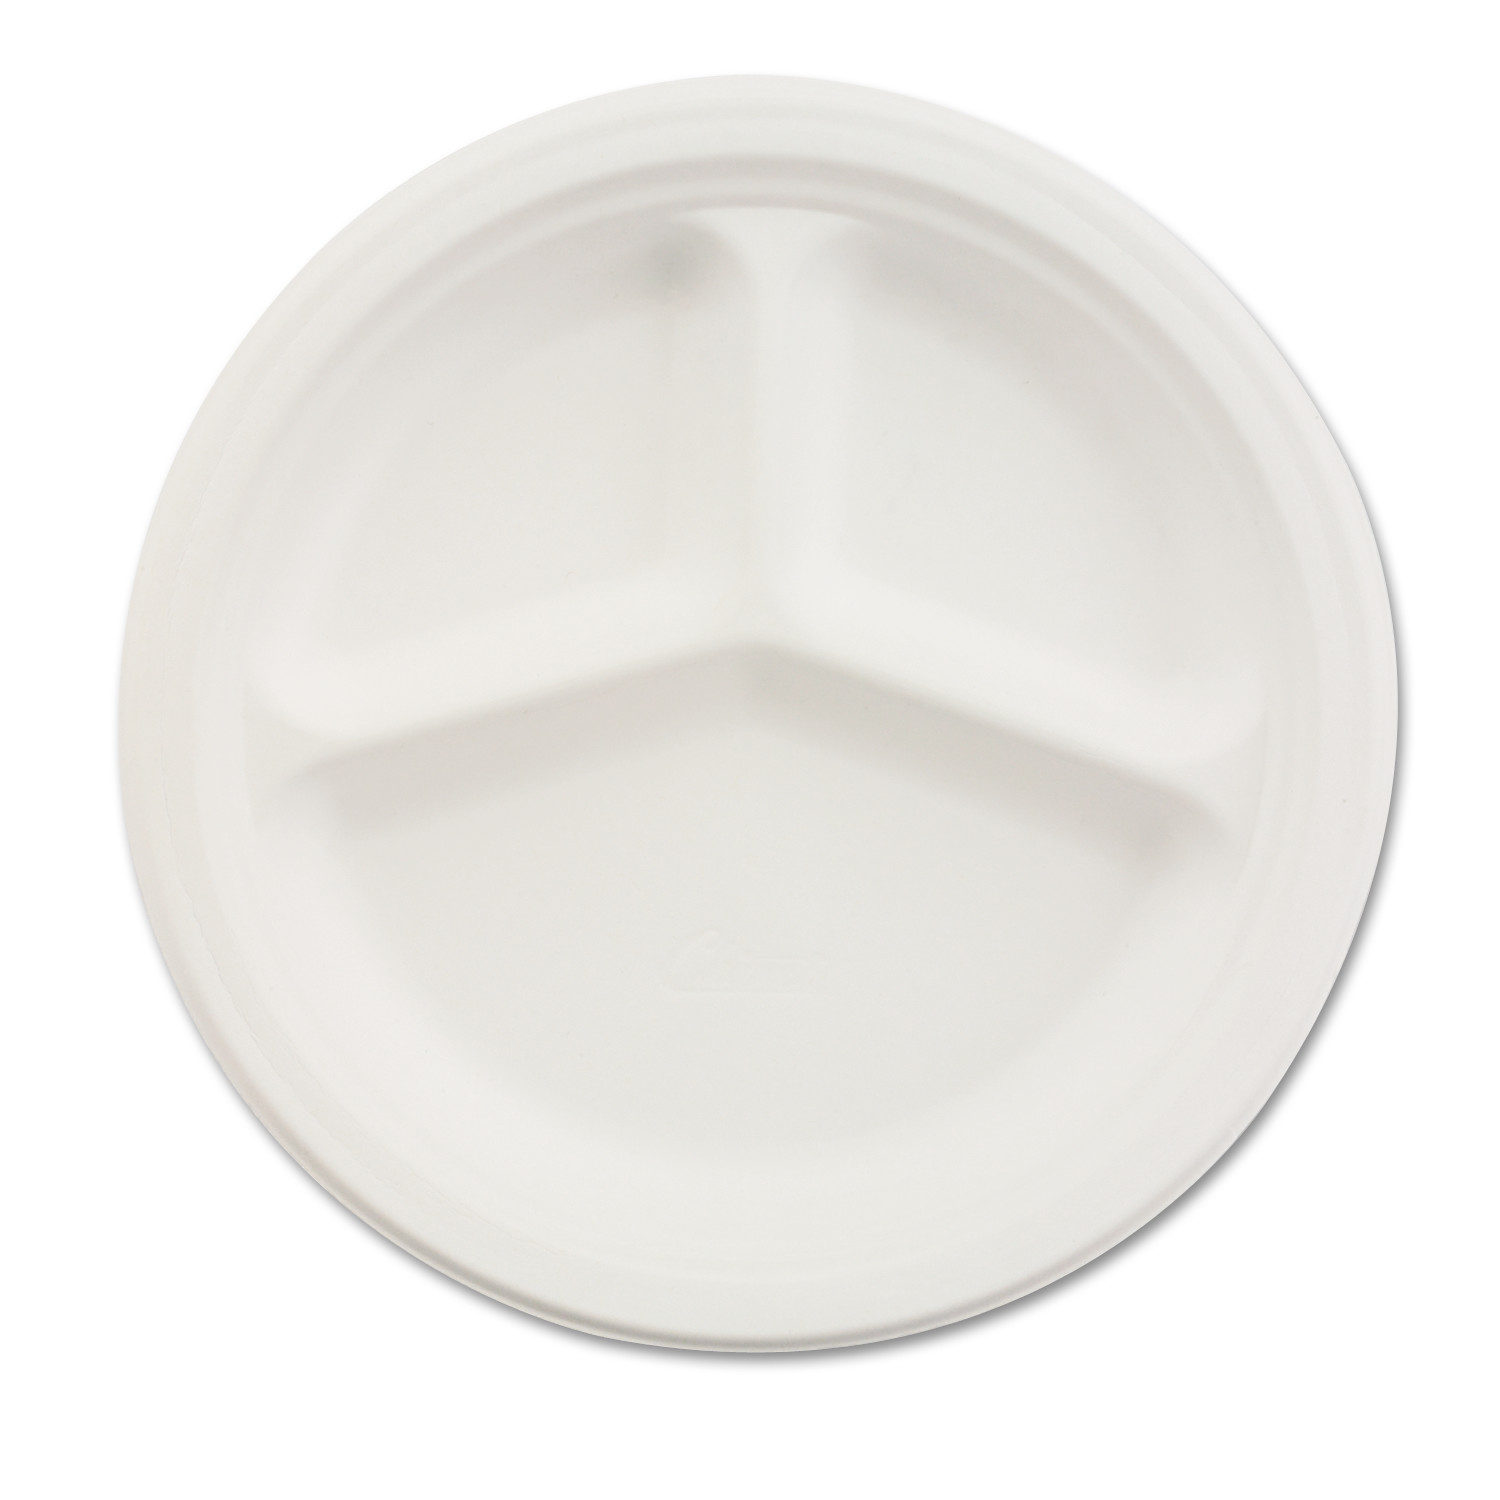 Chinet Classic 3-Compartment 9-1/4 Inch Paper Plates 500ct  sc 1 st  Walmart & Chinet Classic 3-Compartment 9-1/4 Inch Paper Plates 500ct ...